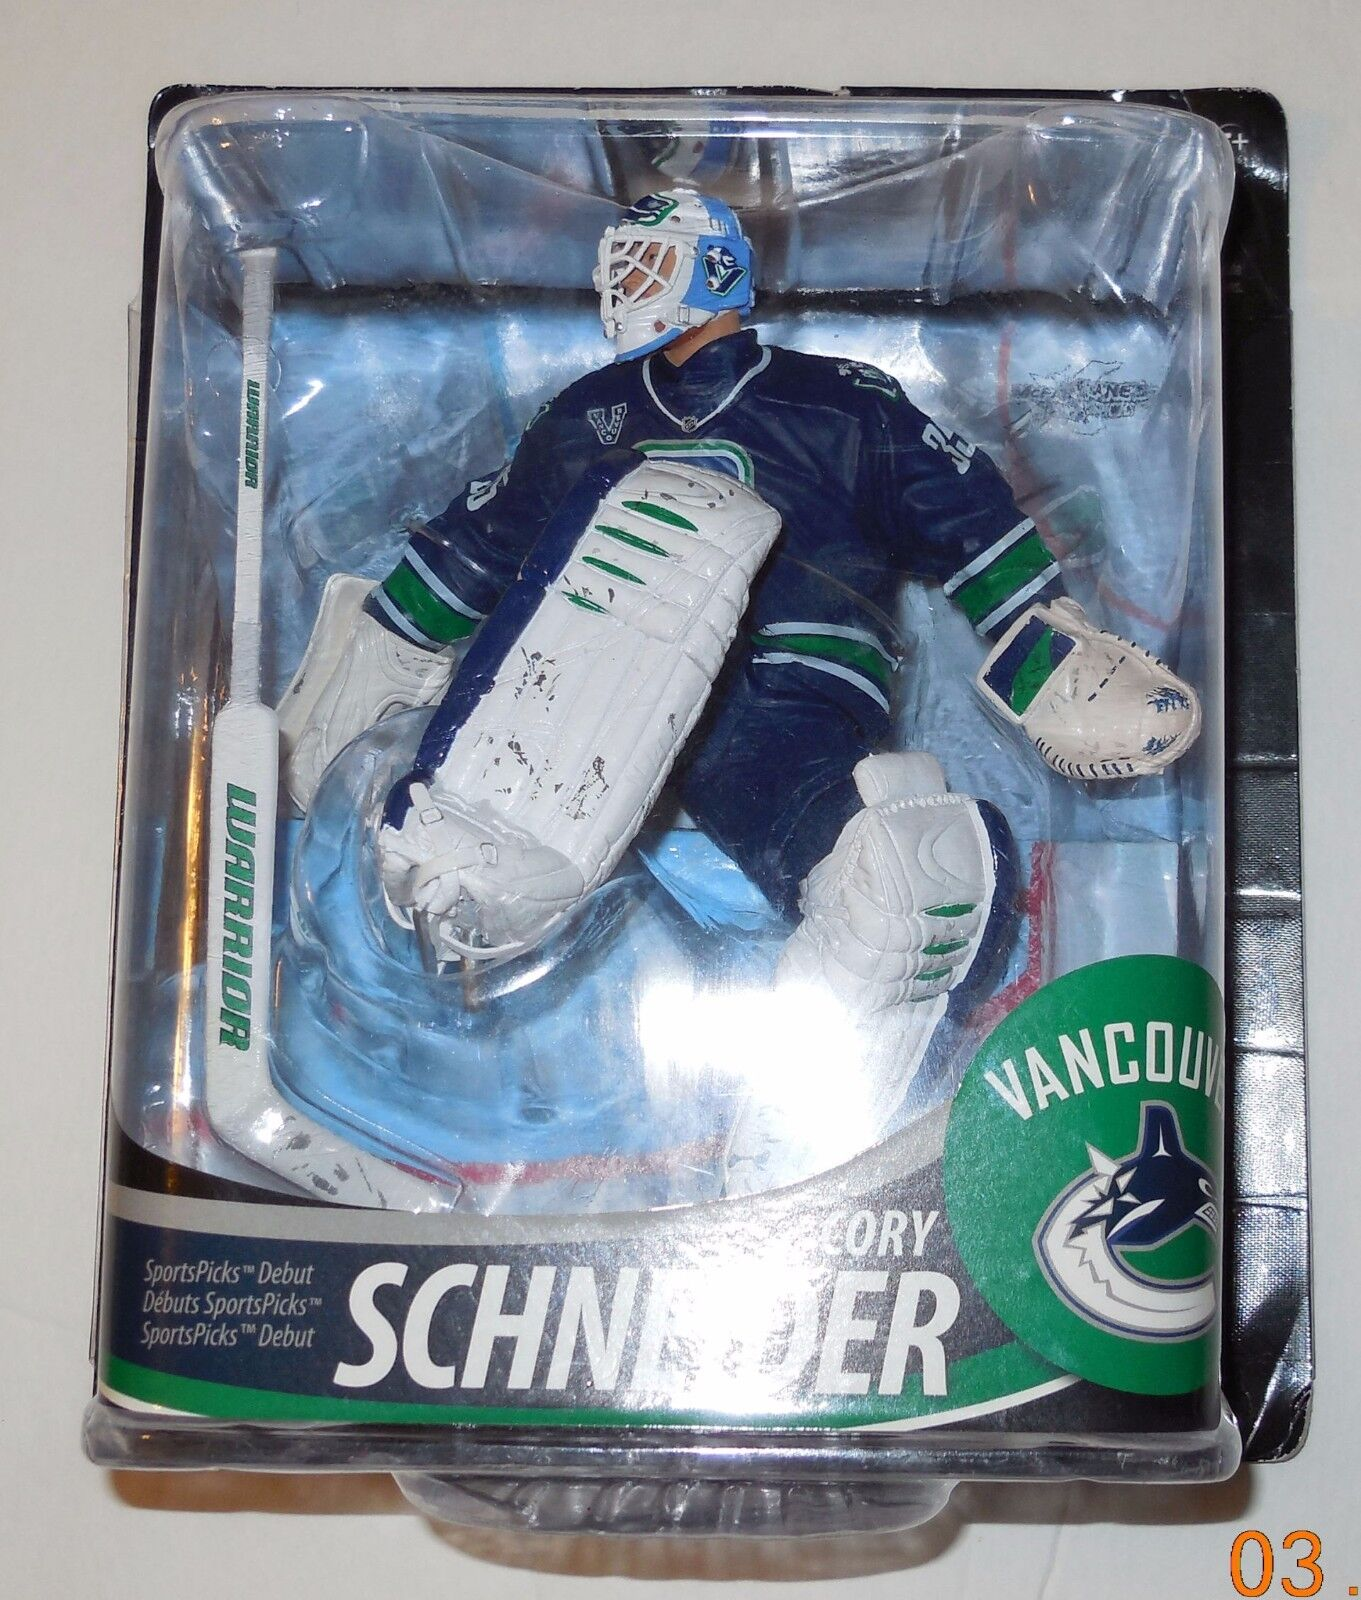 Mcfarlane NHL Series 33 Cory schneider 3rd Jersey CL Variant Action Figure VHTF